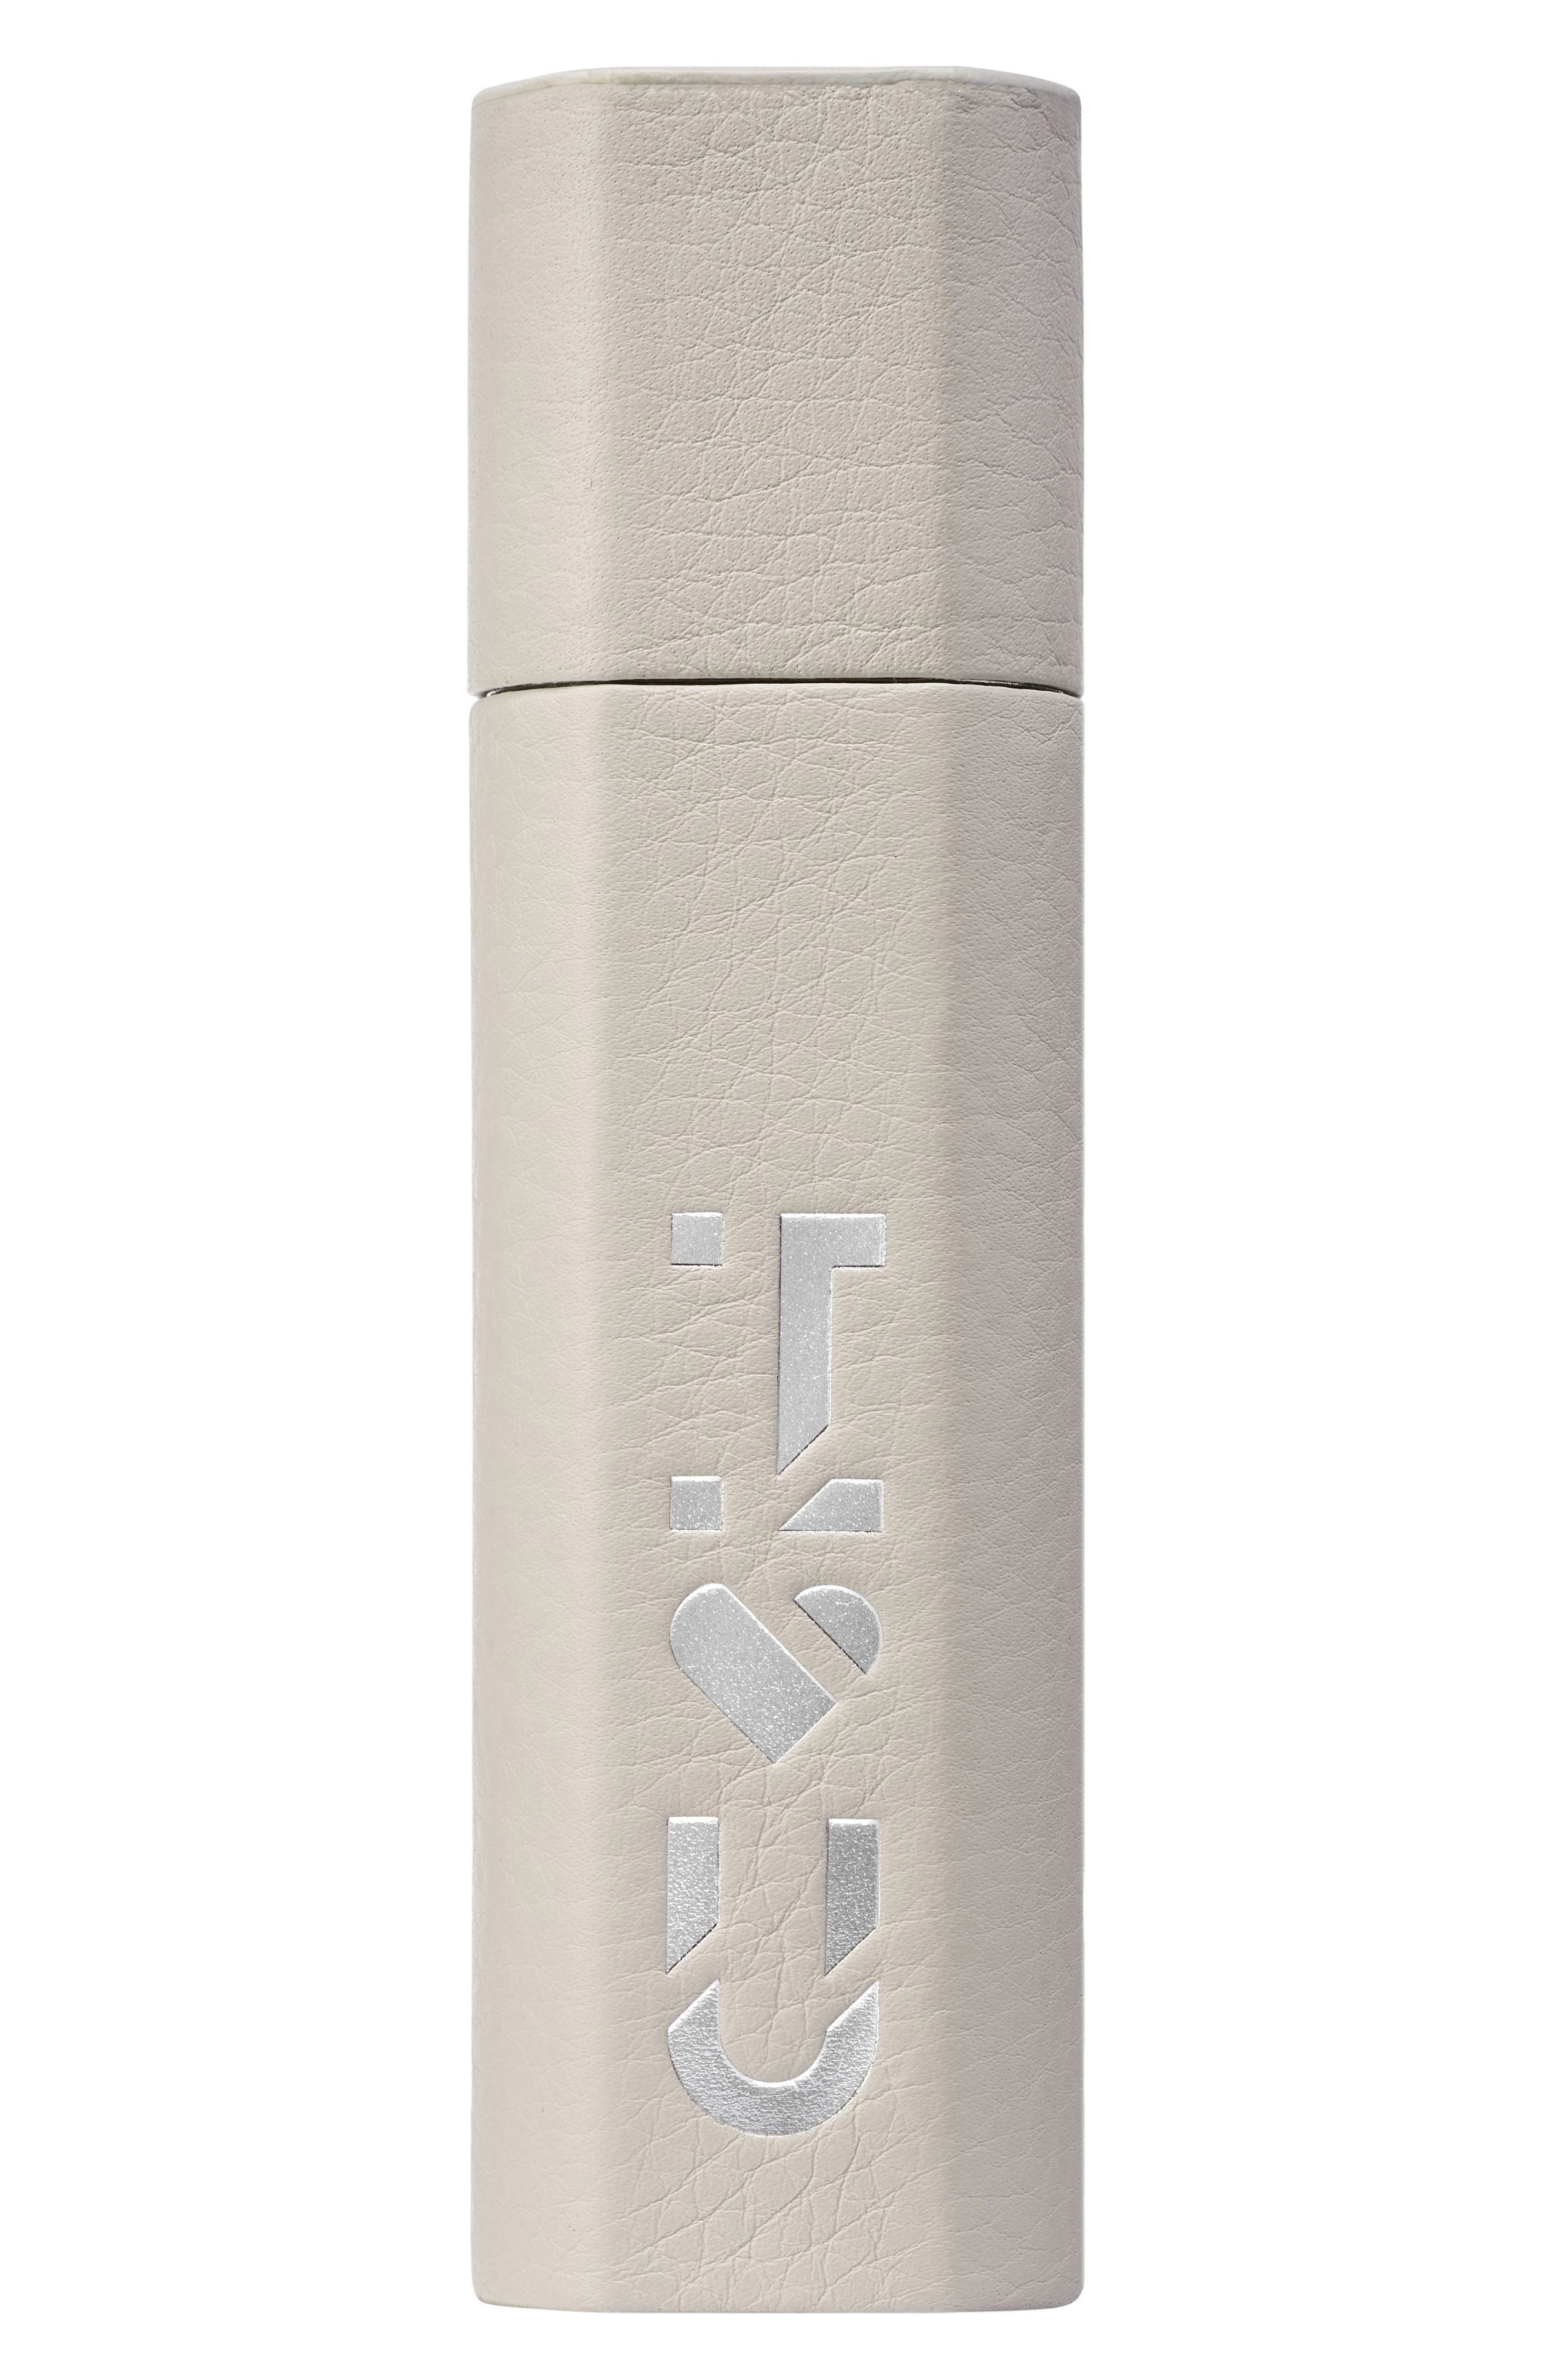 BYREDO I Love You Travel Spray Case (Limited Edition)